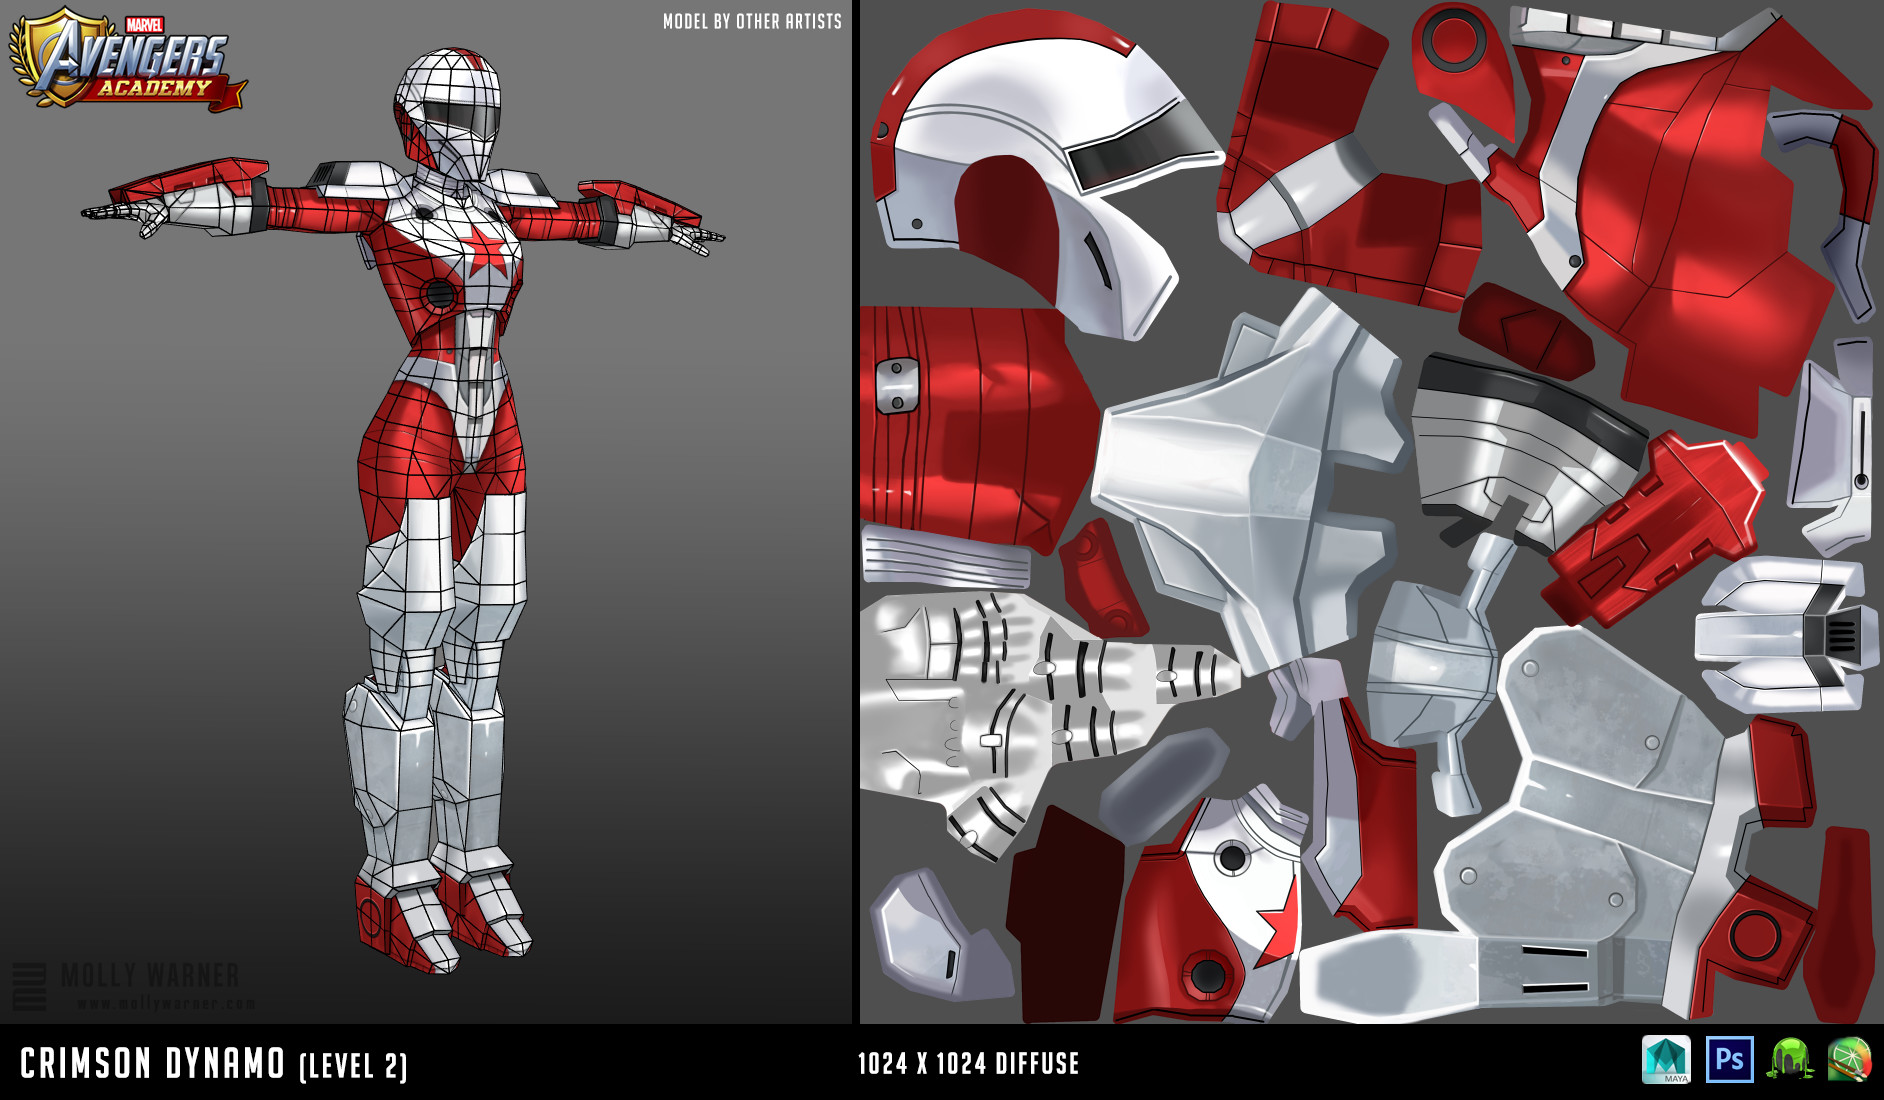 Molly warner 5 crimson dynamo l2 textures wireframe